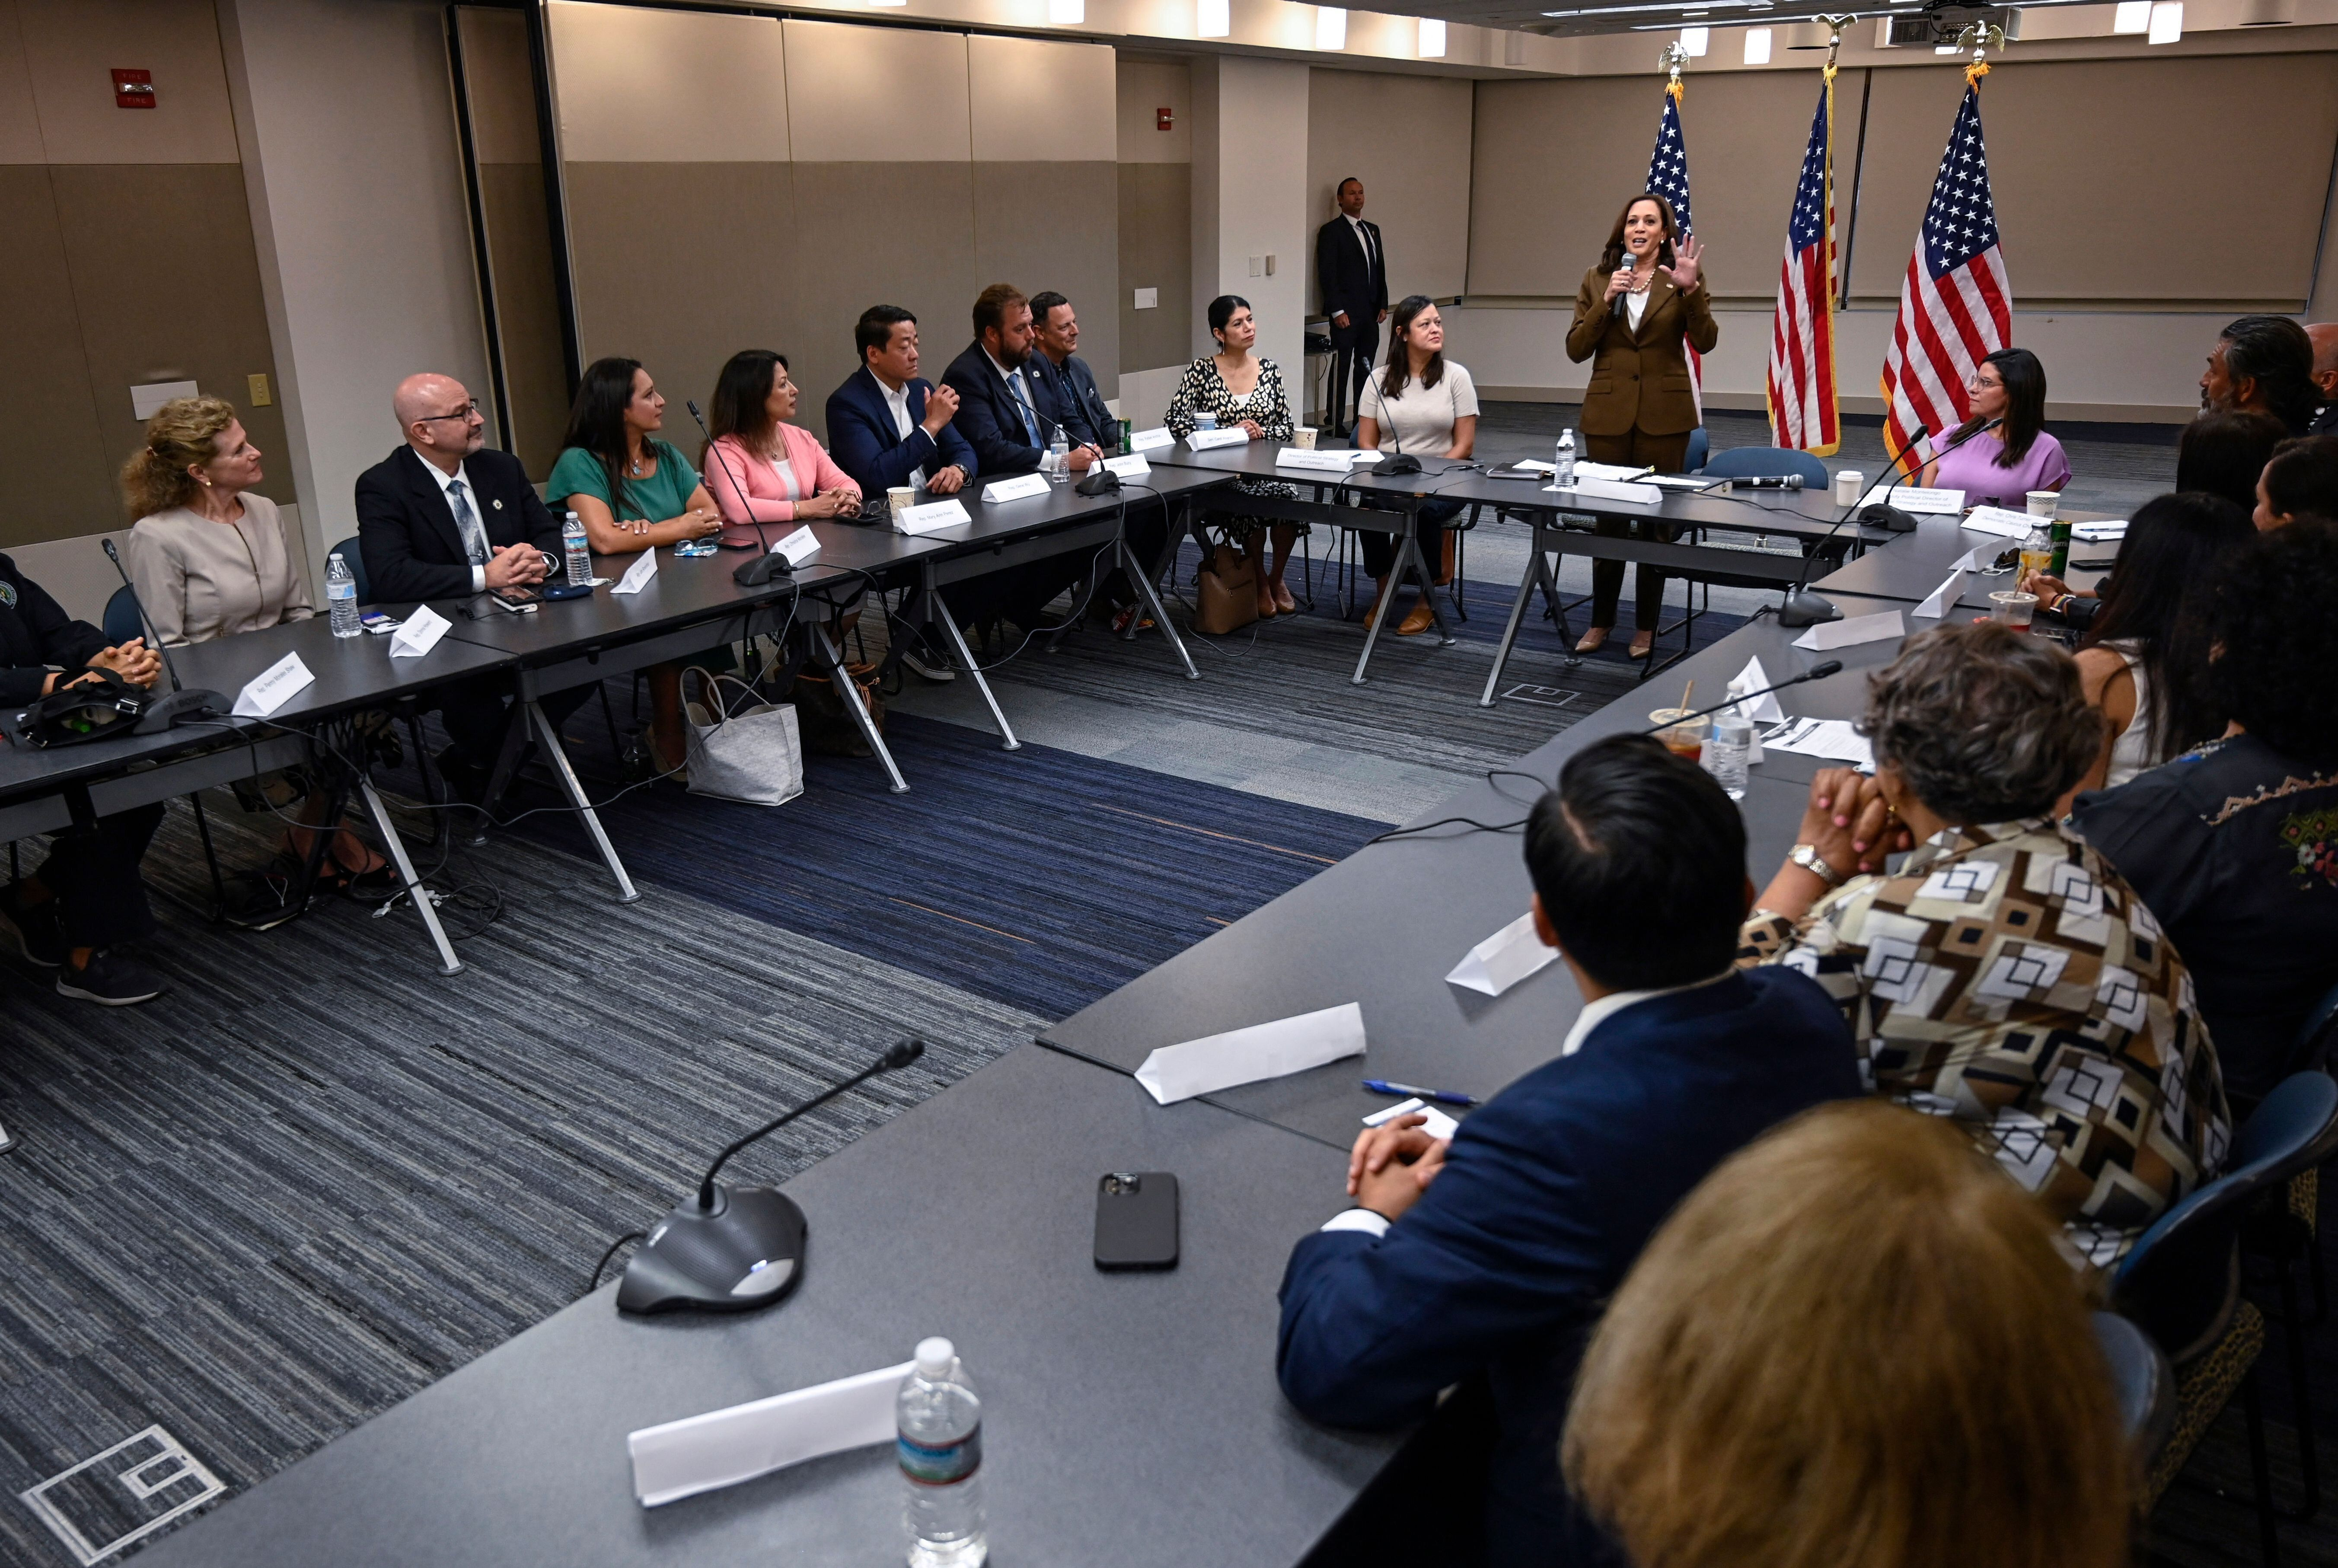 Vice President Kamala Harris (standing) met with some Democratic members of the Texas state legislature on Tuesday.